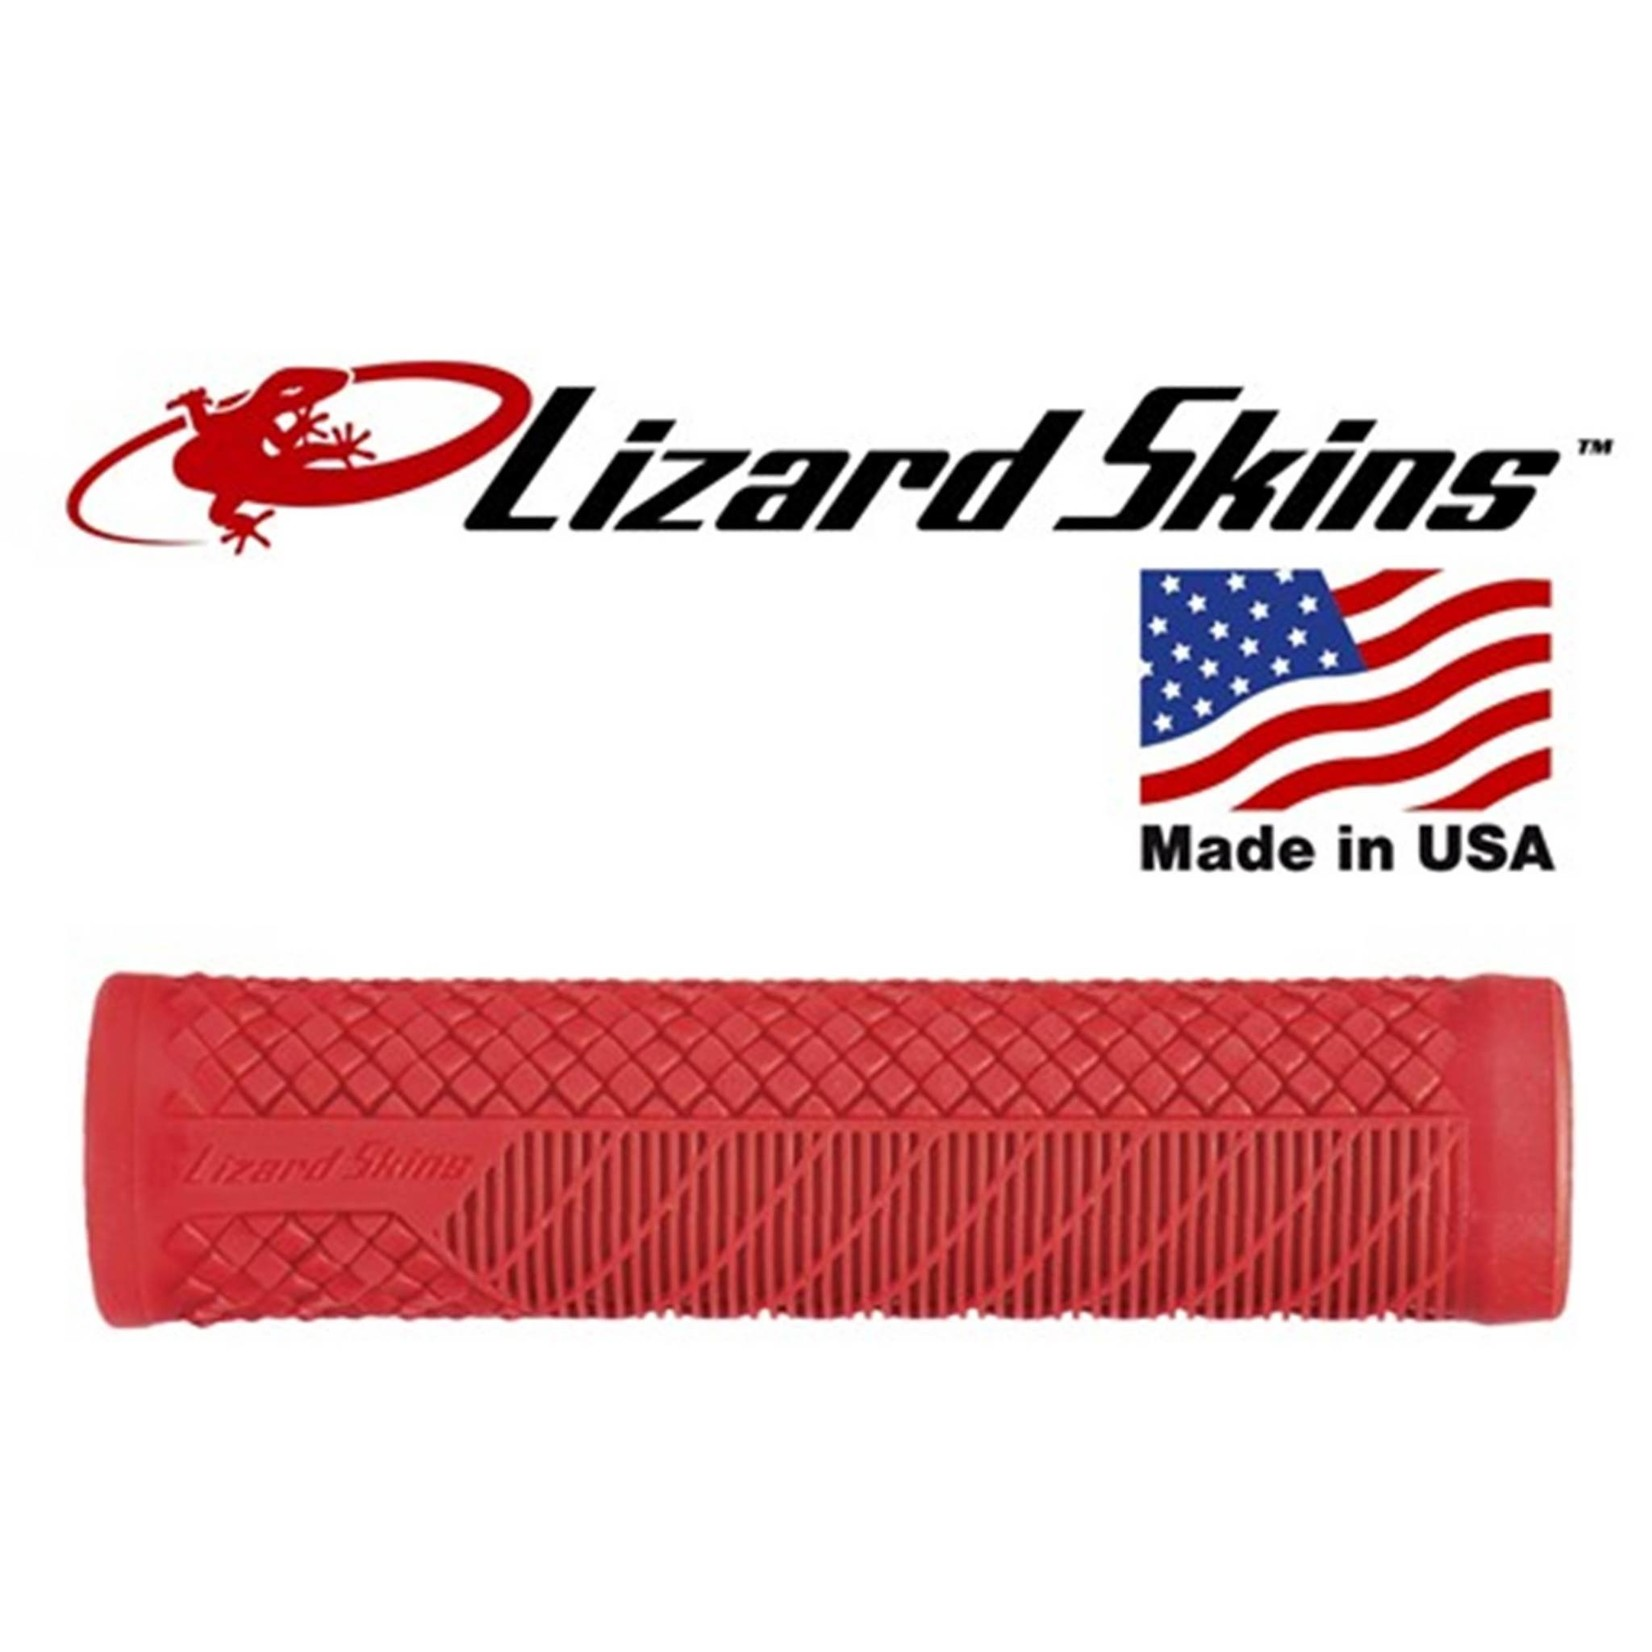 Lizard Skins Charger Evo Single Compound Grips Red